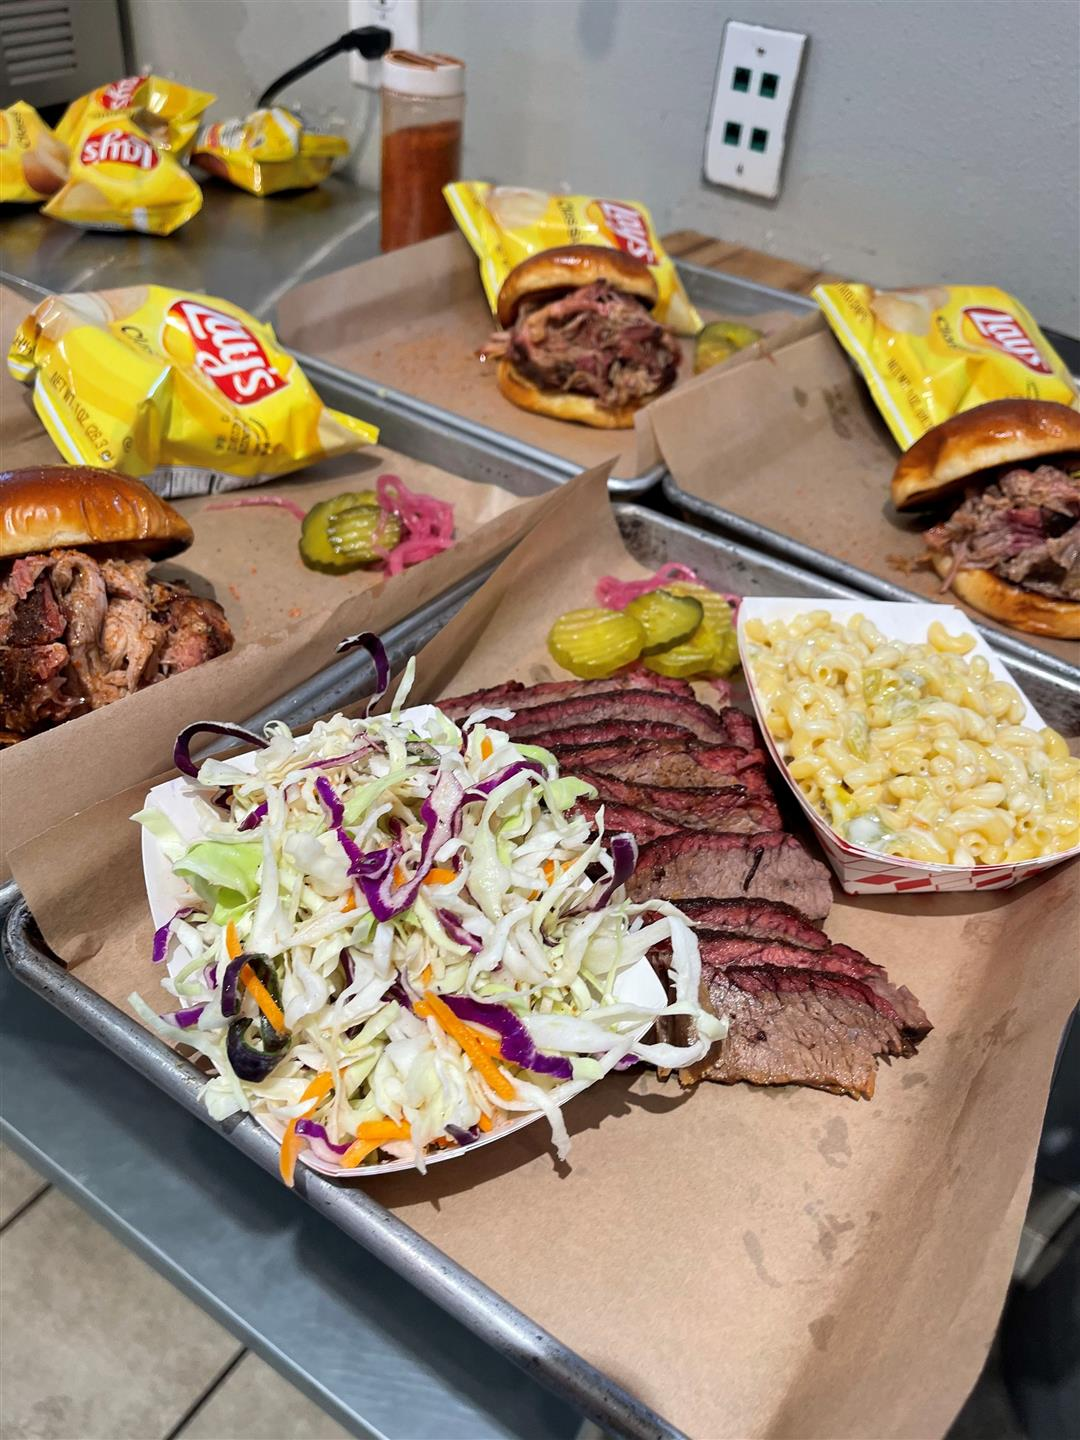 trays with ribs and pulled pork sandwiches with lays potato chips